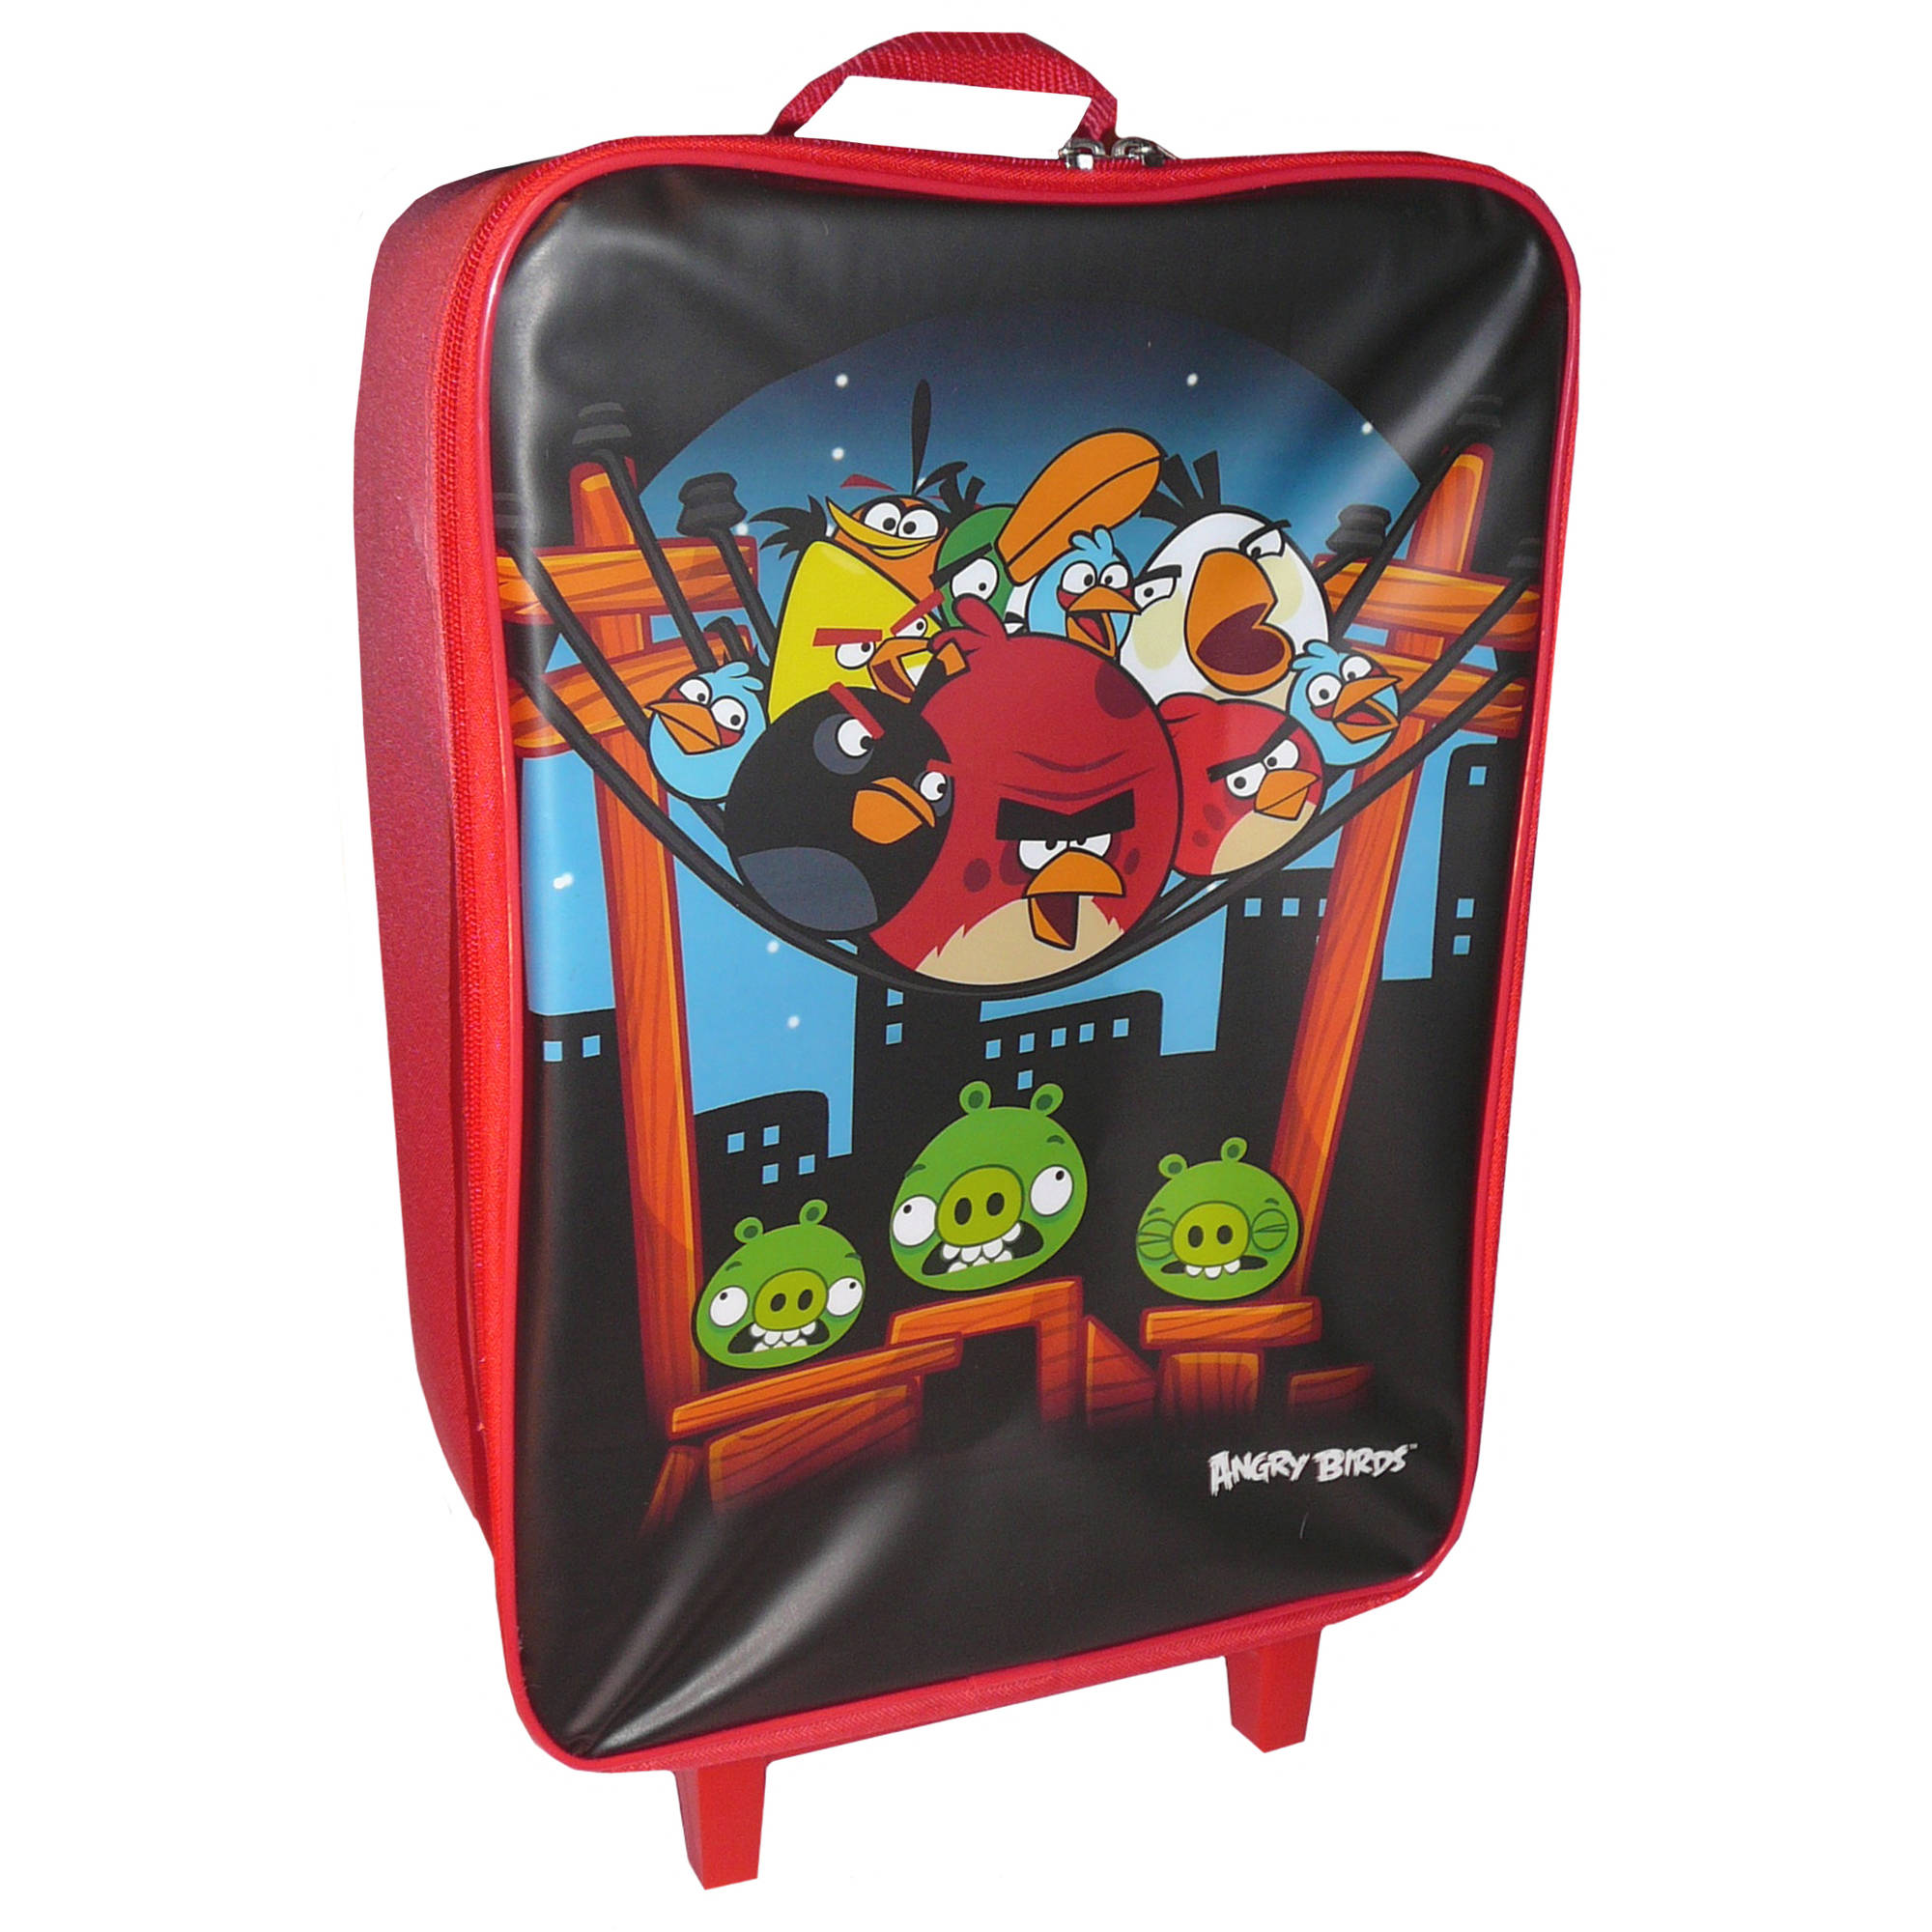 Angry Birds Rolling Luggage